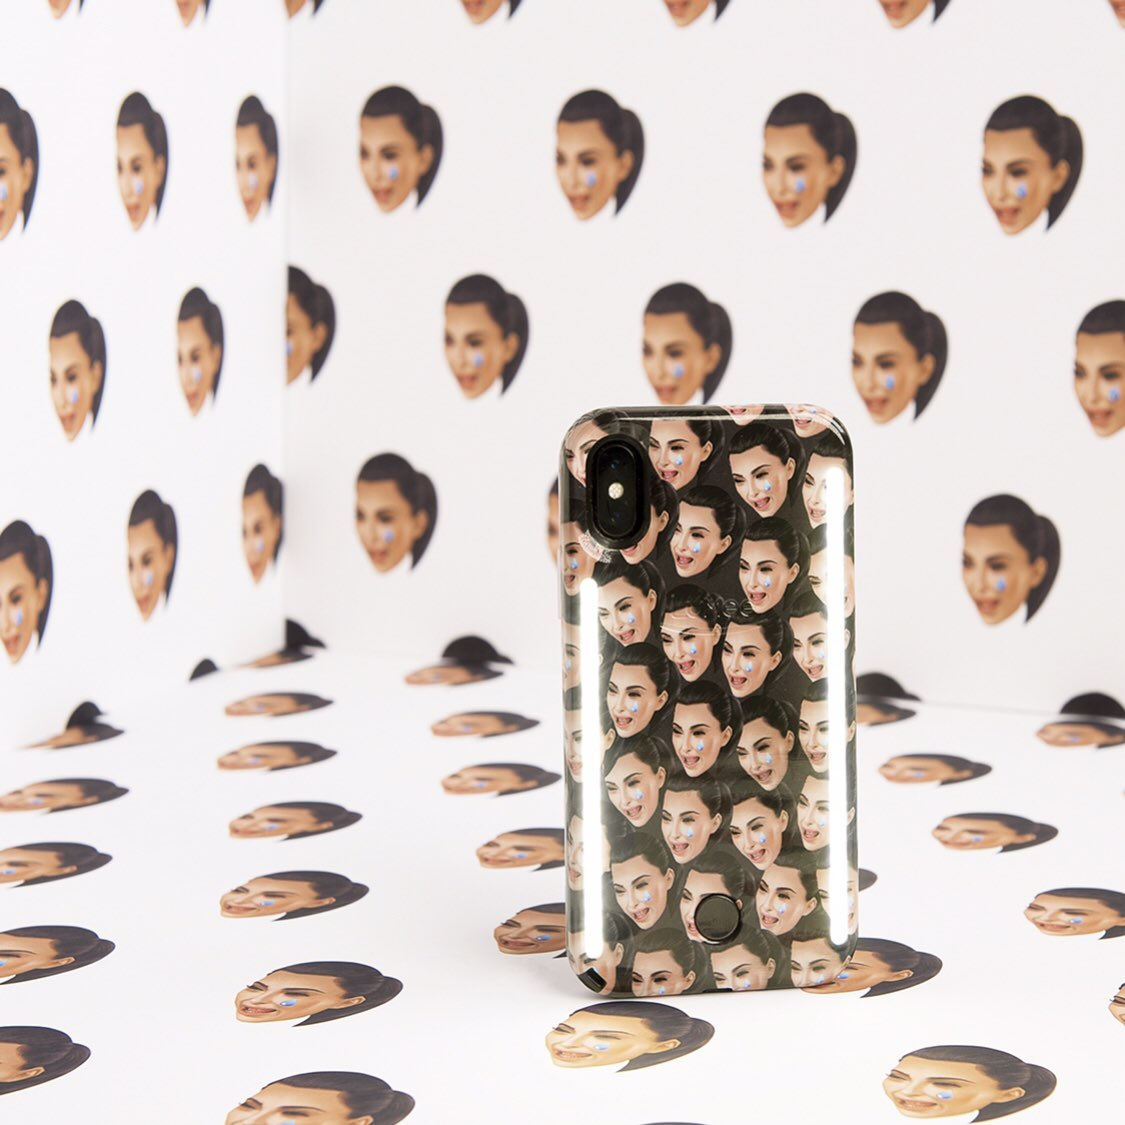 Limited edition Cry Face Kimoji x Lumee case available now on https://t.co/uJ7W1z5pLY https://t.co/aVZ5JSq3sa